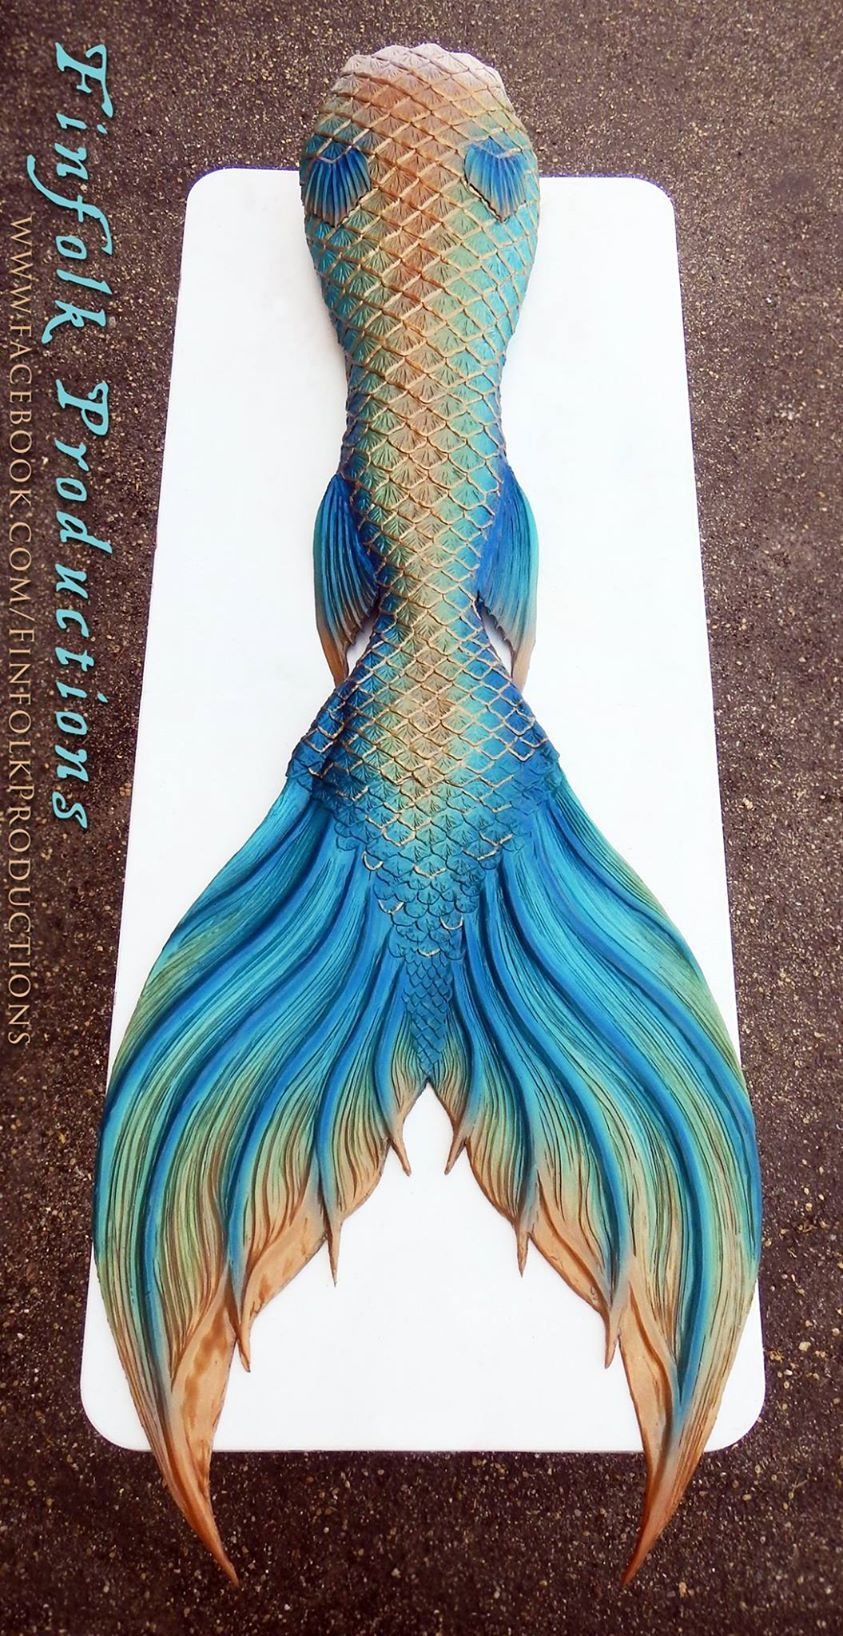 Finfolk Scales Mermaid Tail Collection Under